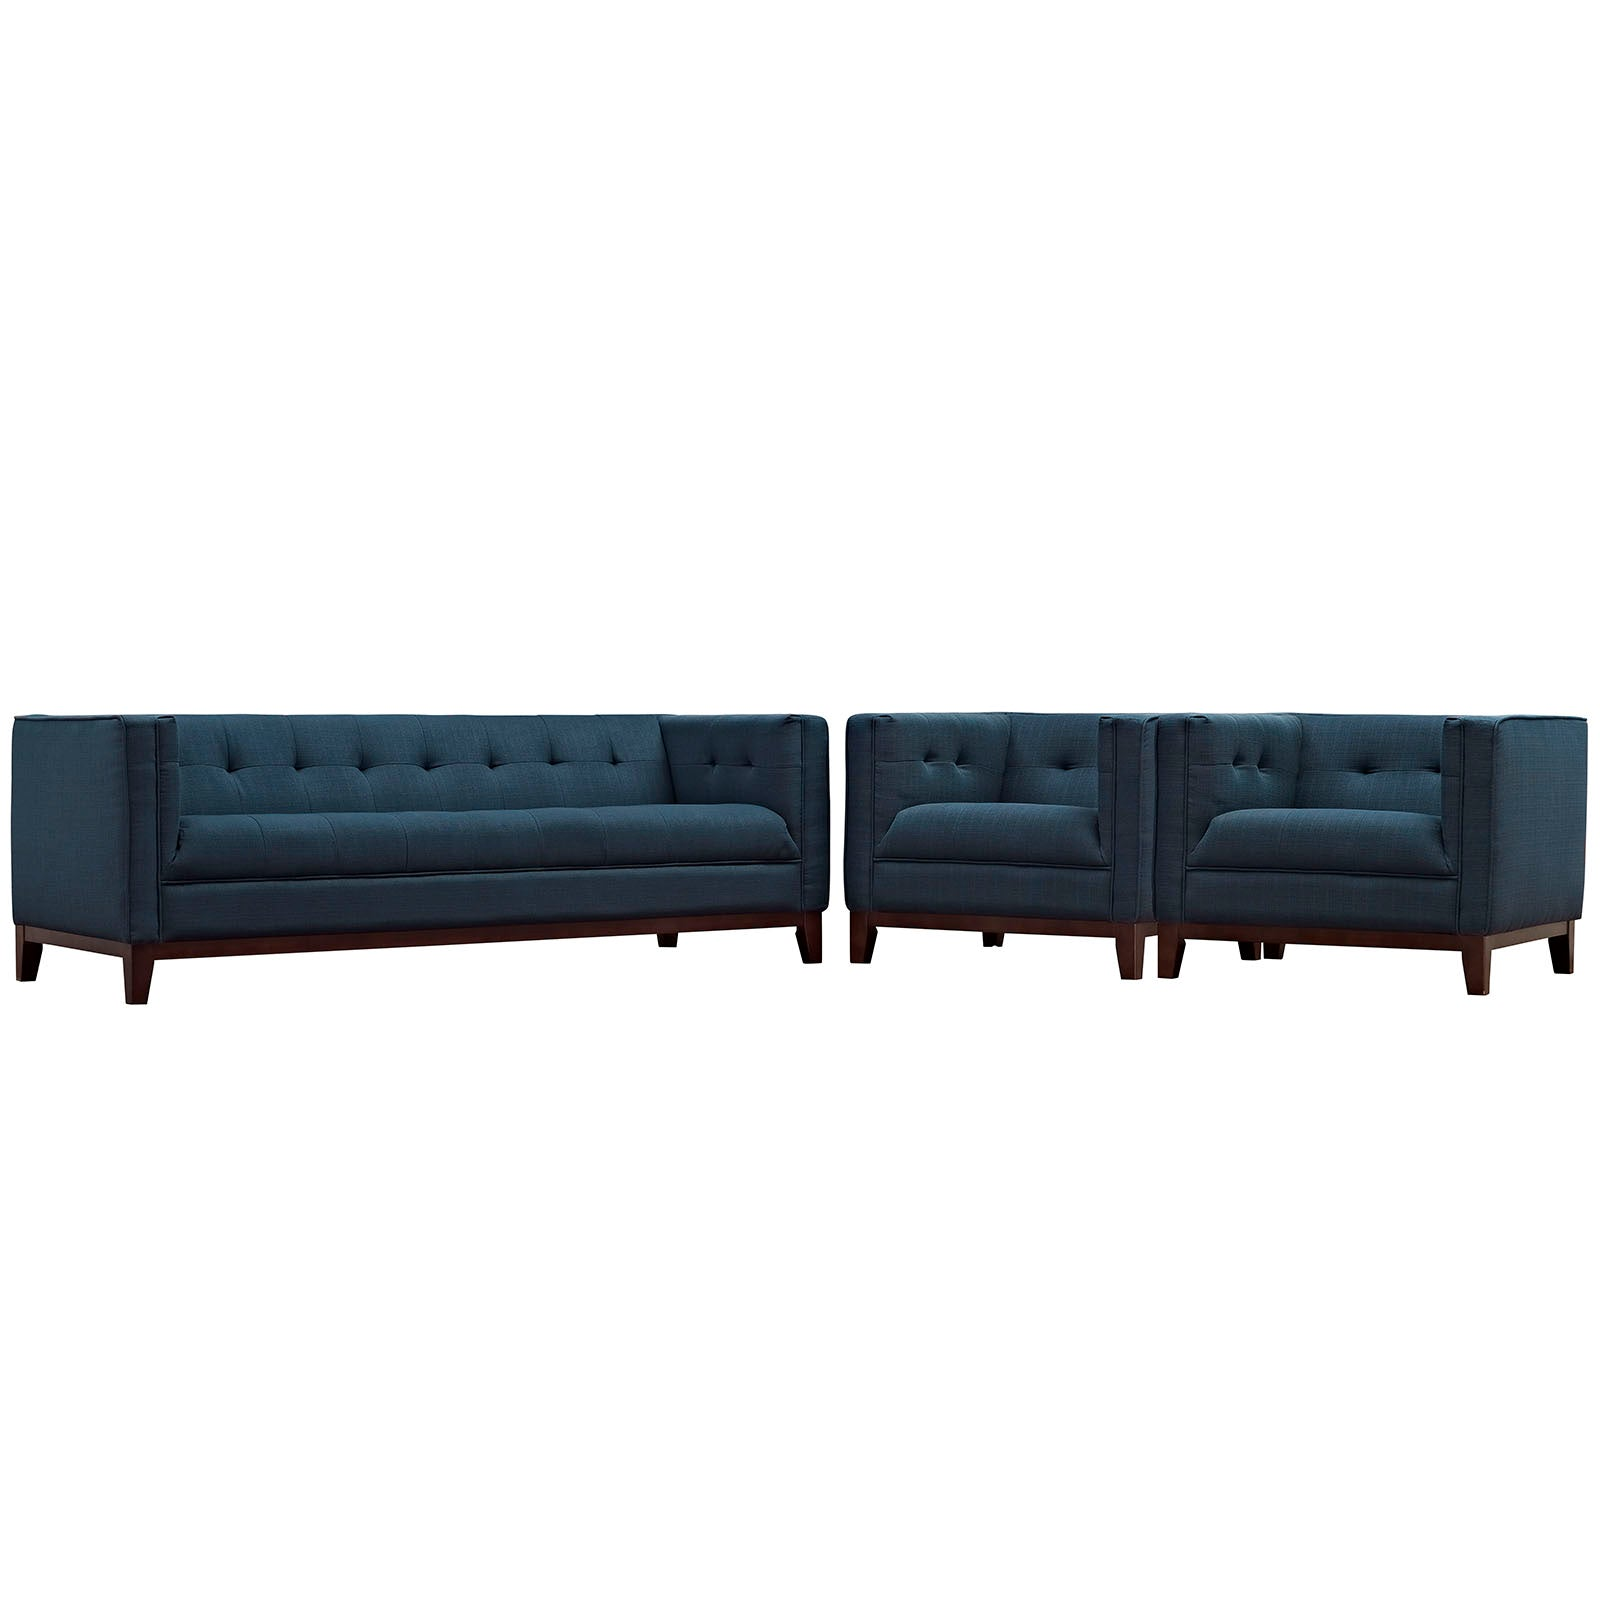 Serve Living Room Set Set of 3